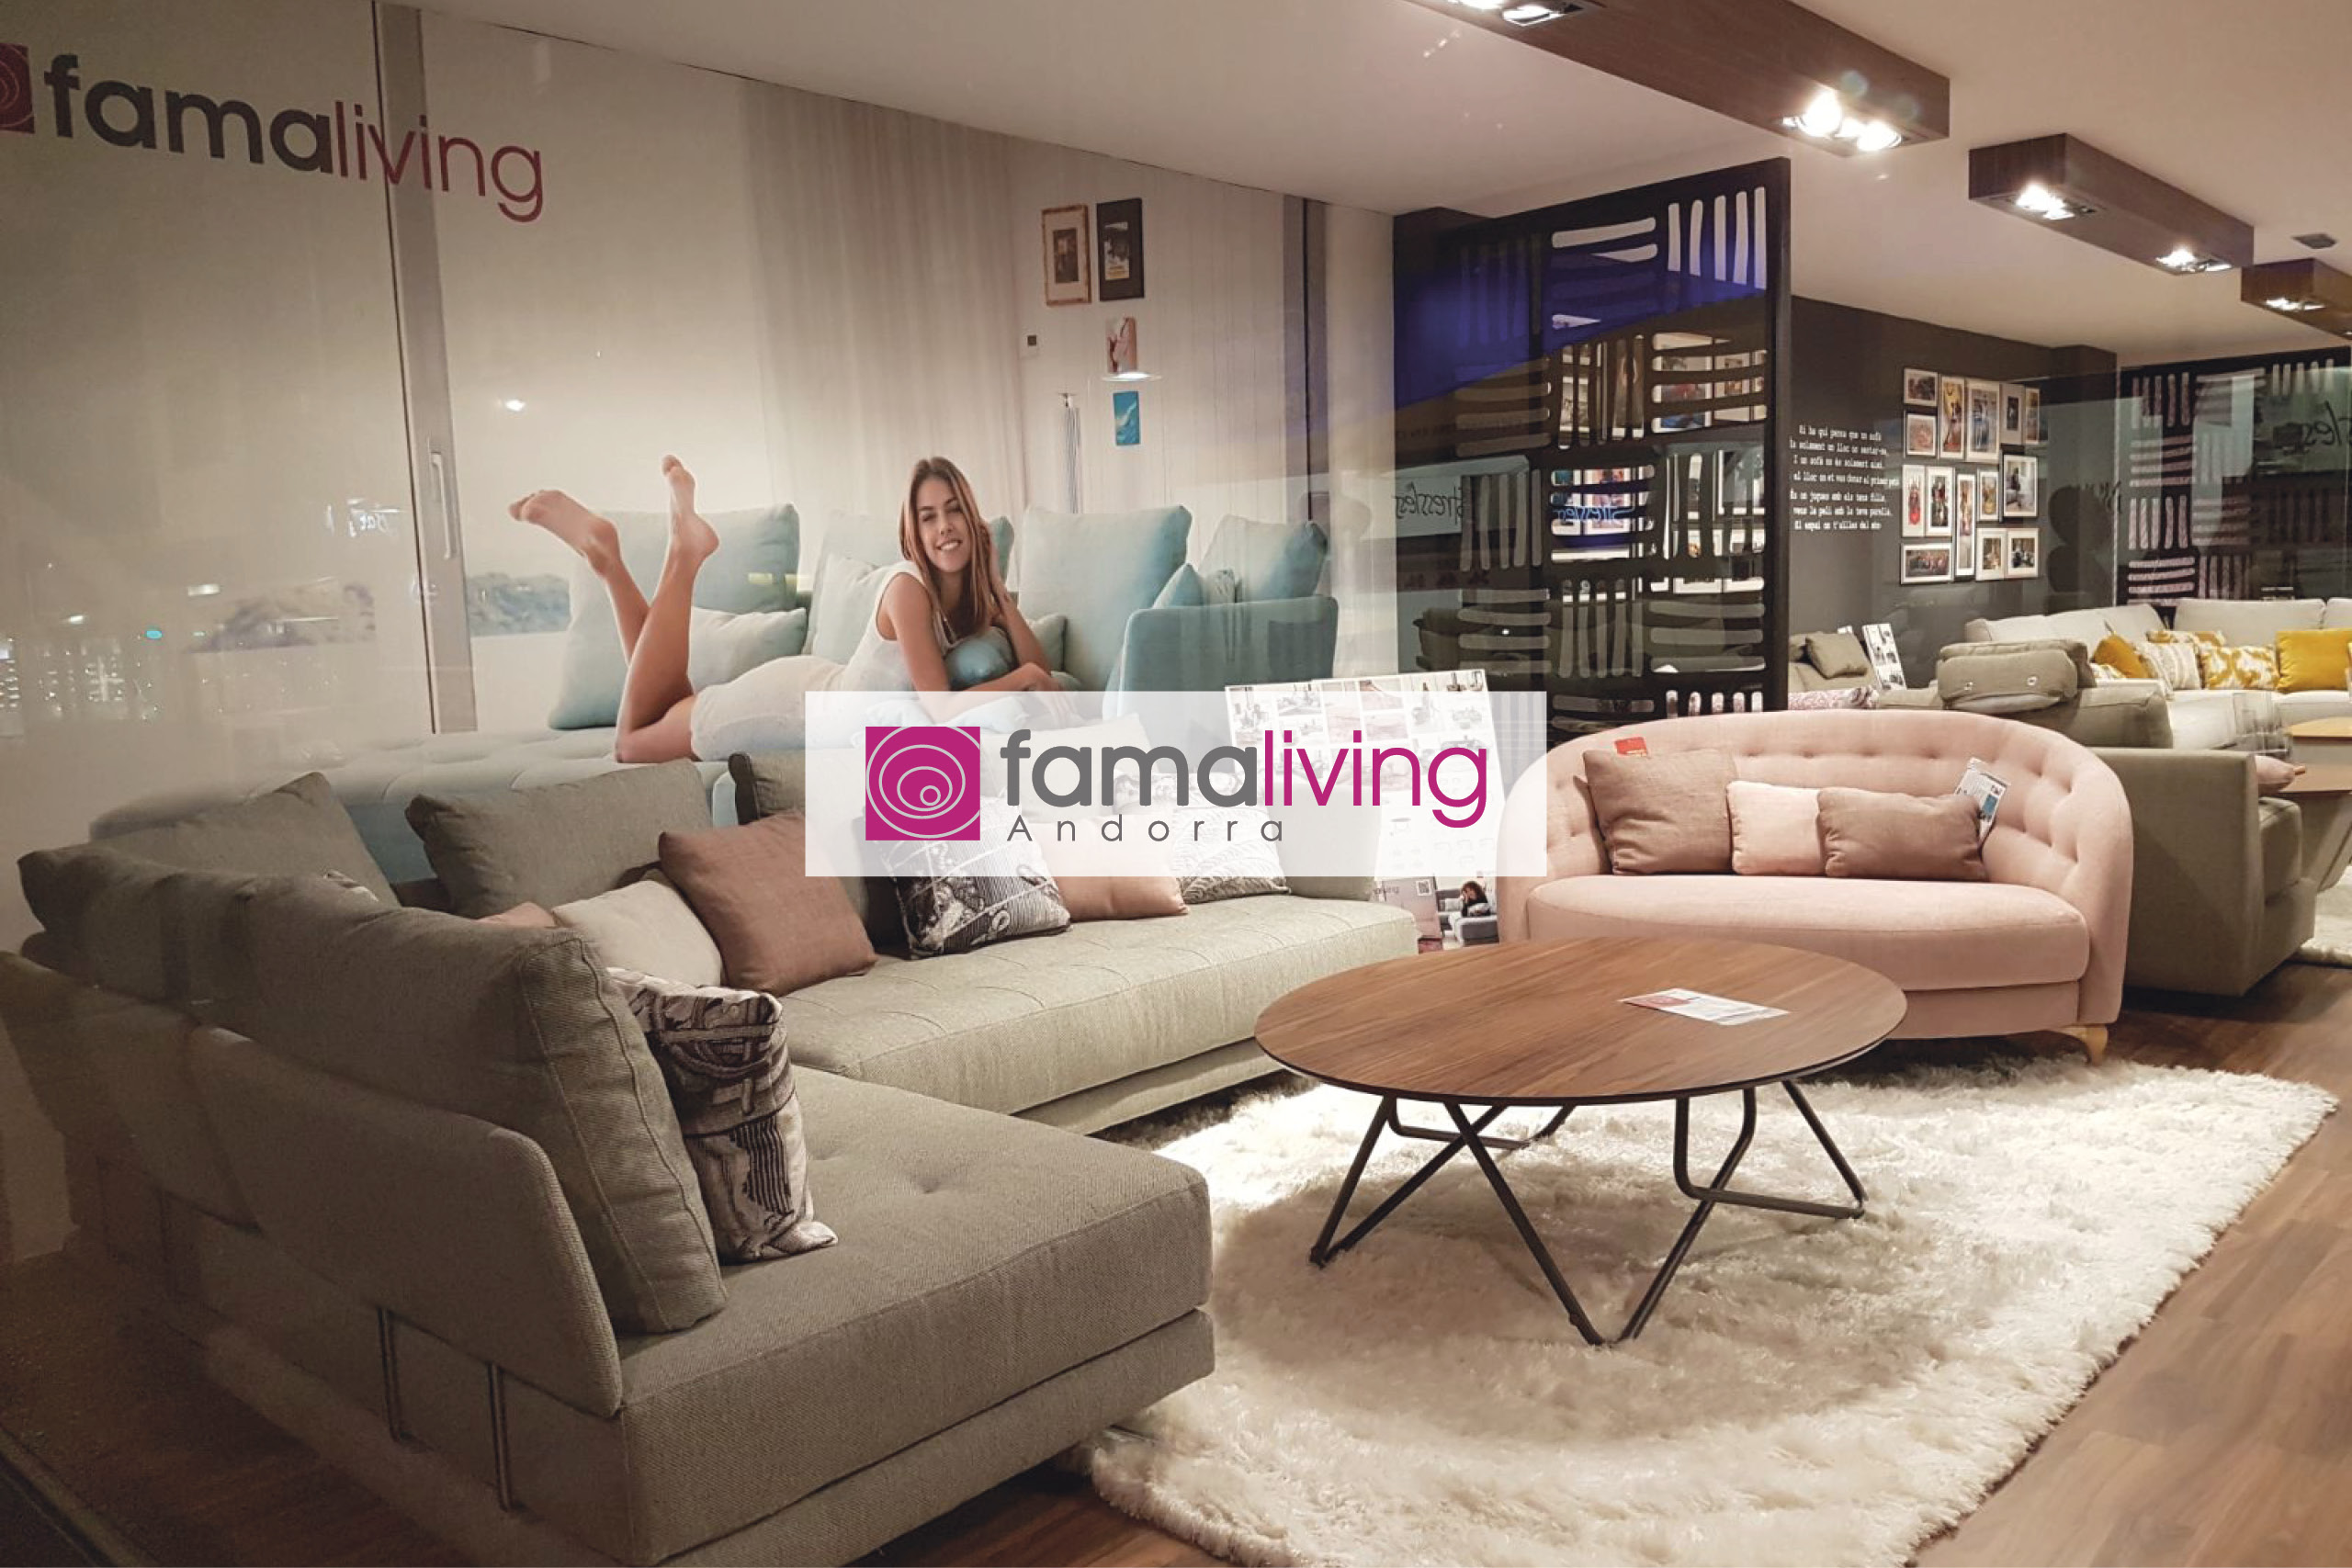 https://www.famaliving.com/andorra-en